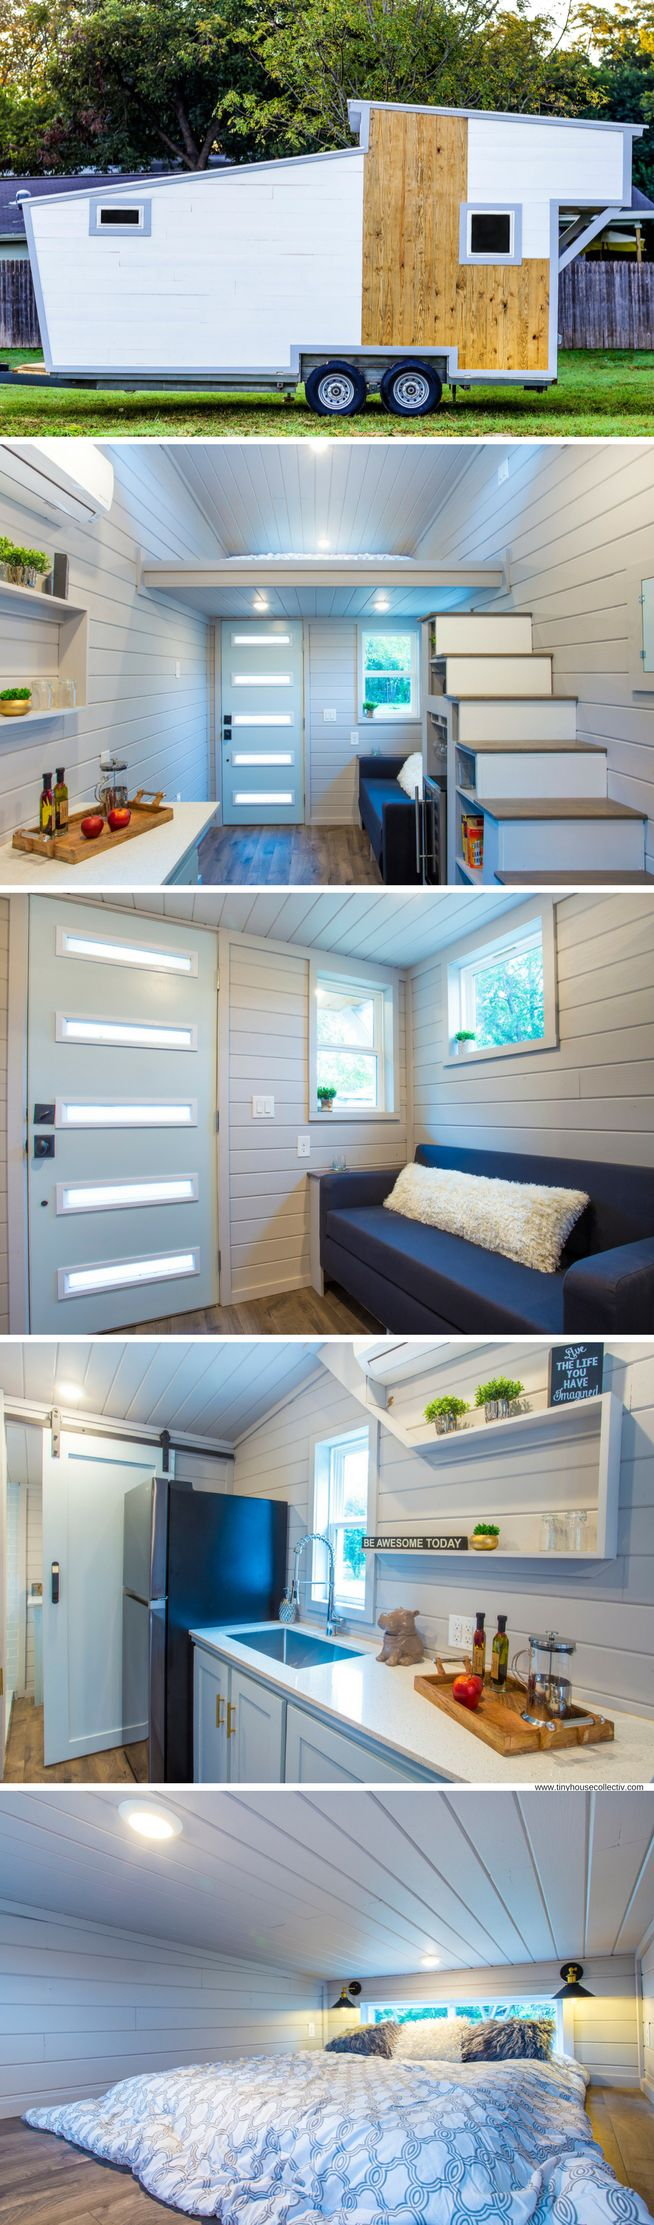 404 best Architecture - Spaces images on Pinterest | Home ideas ...